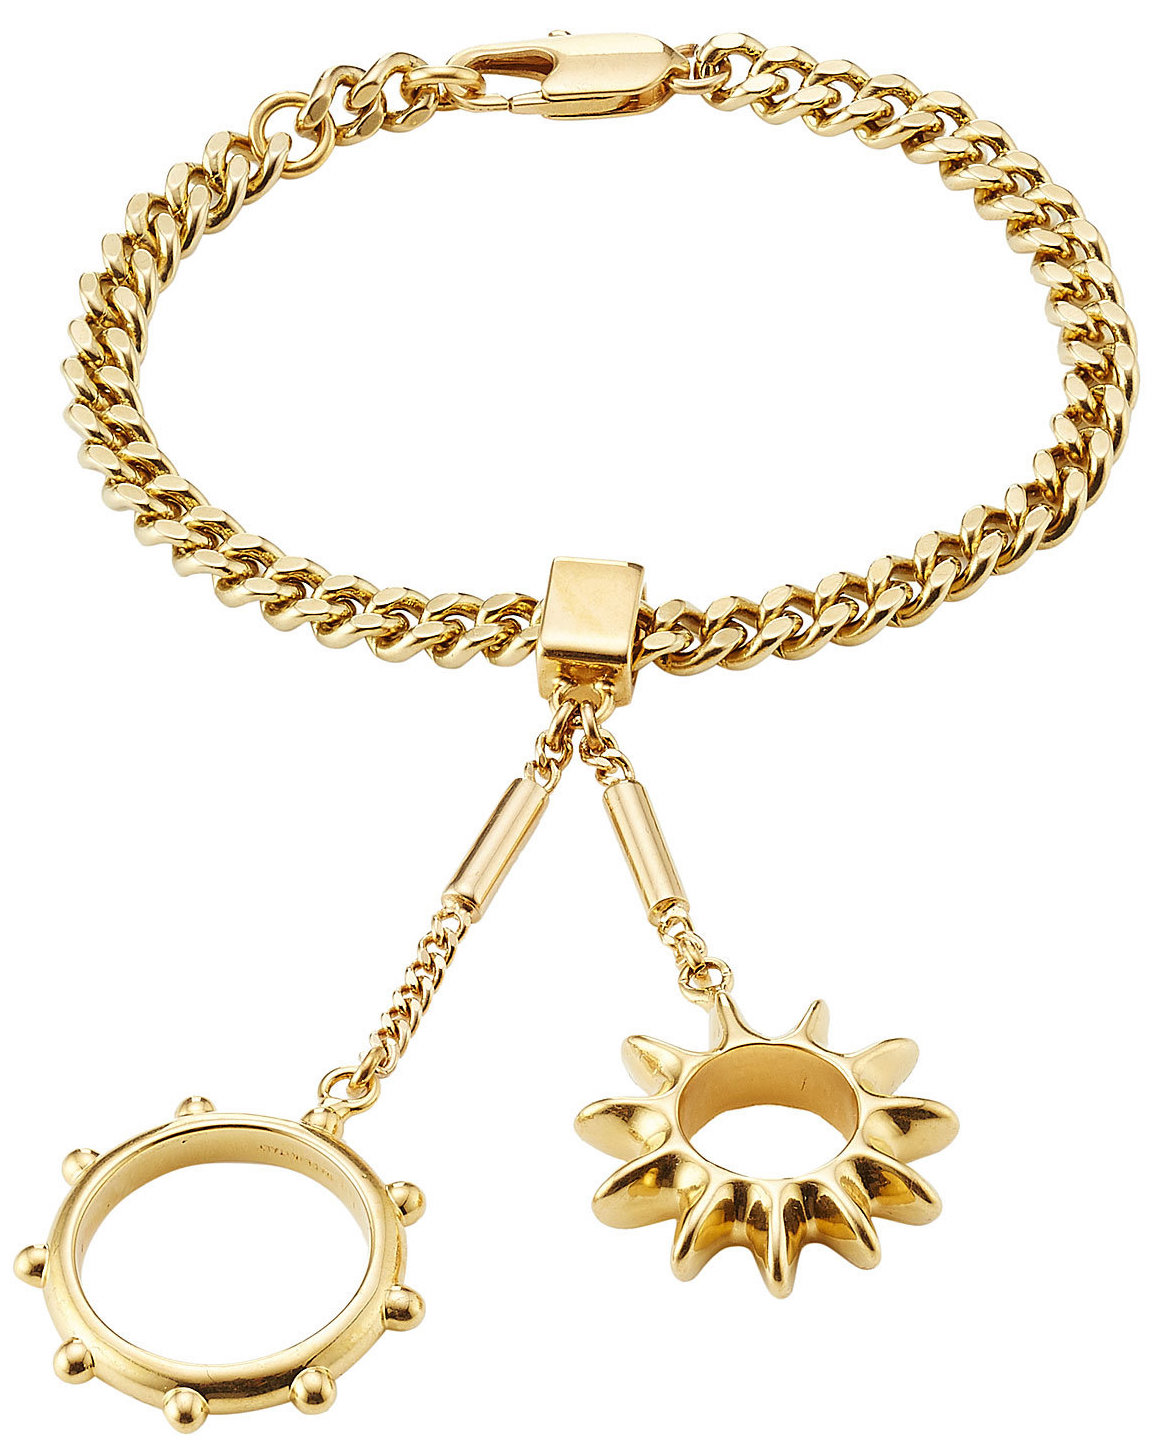 Chloé Bracelet with Rings Attached